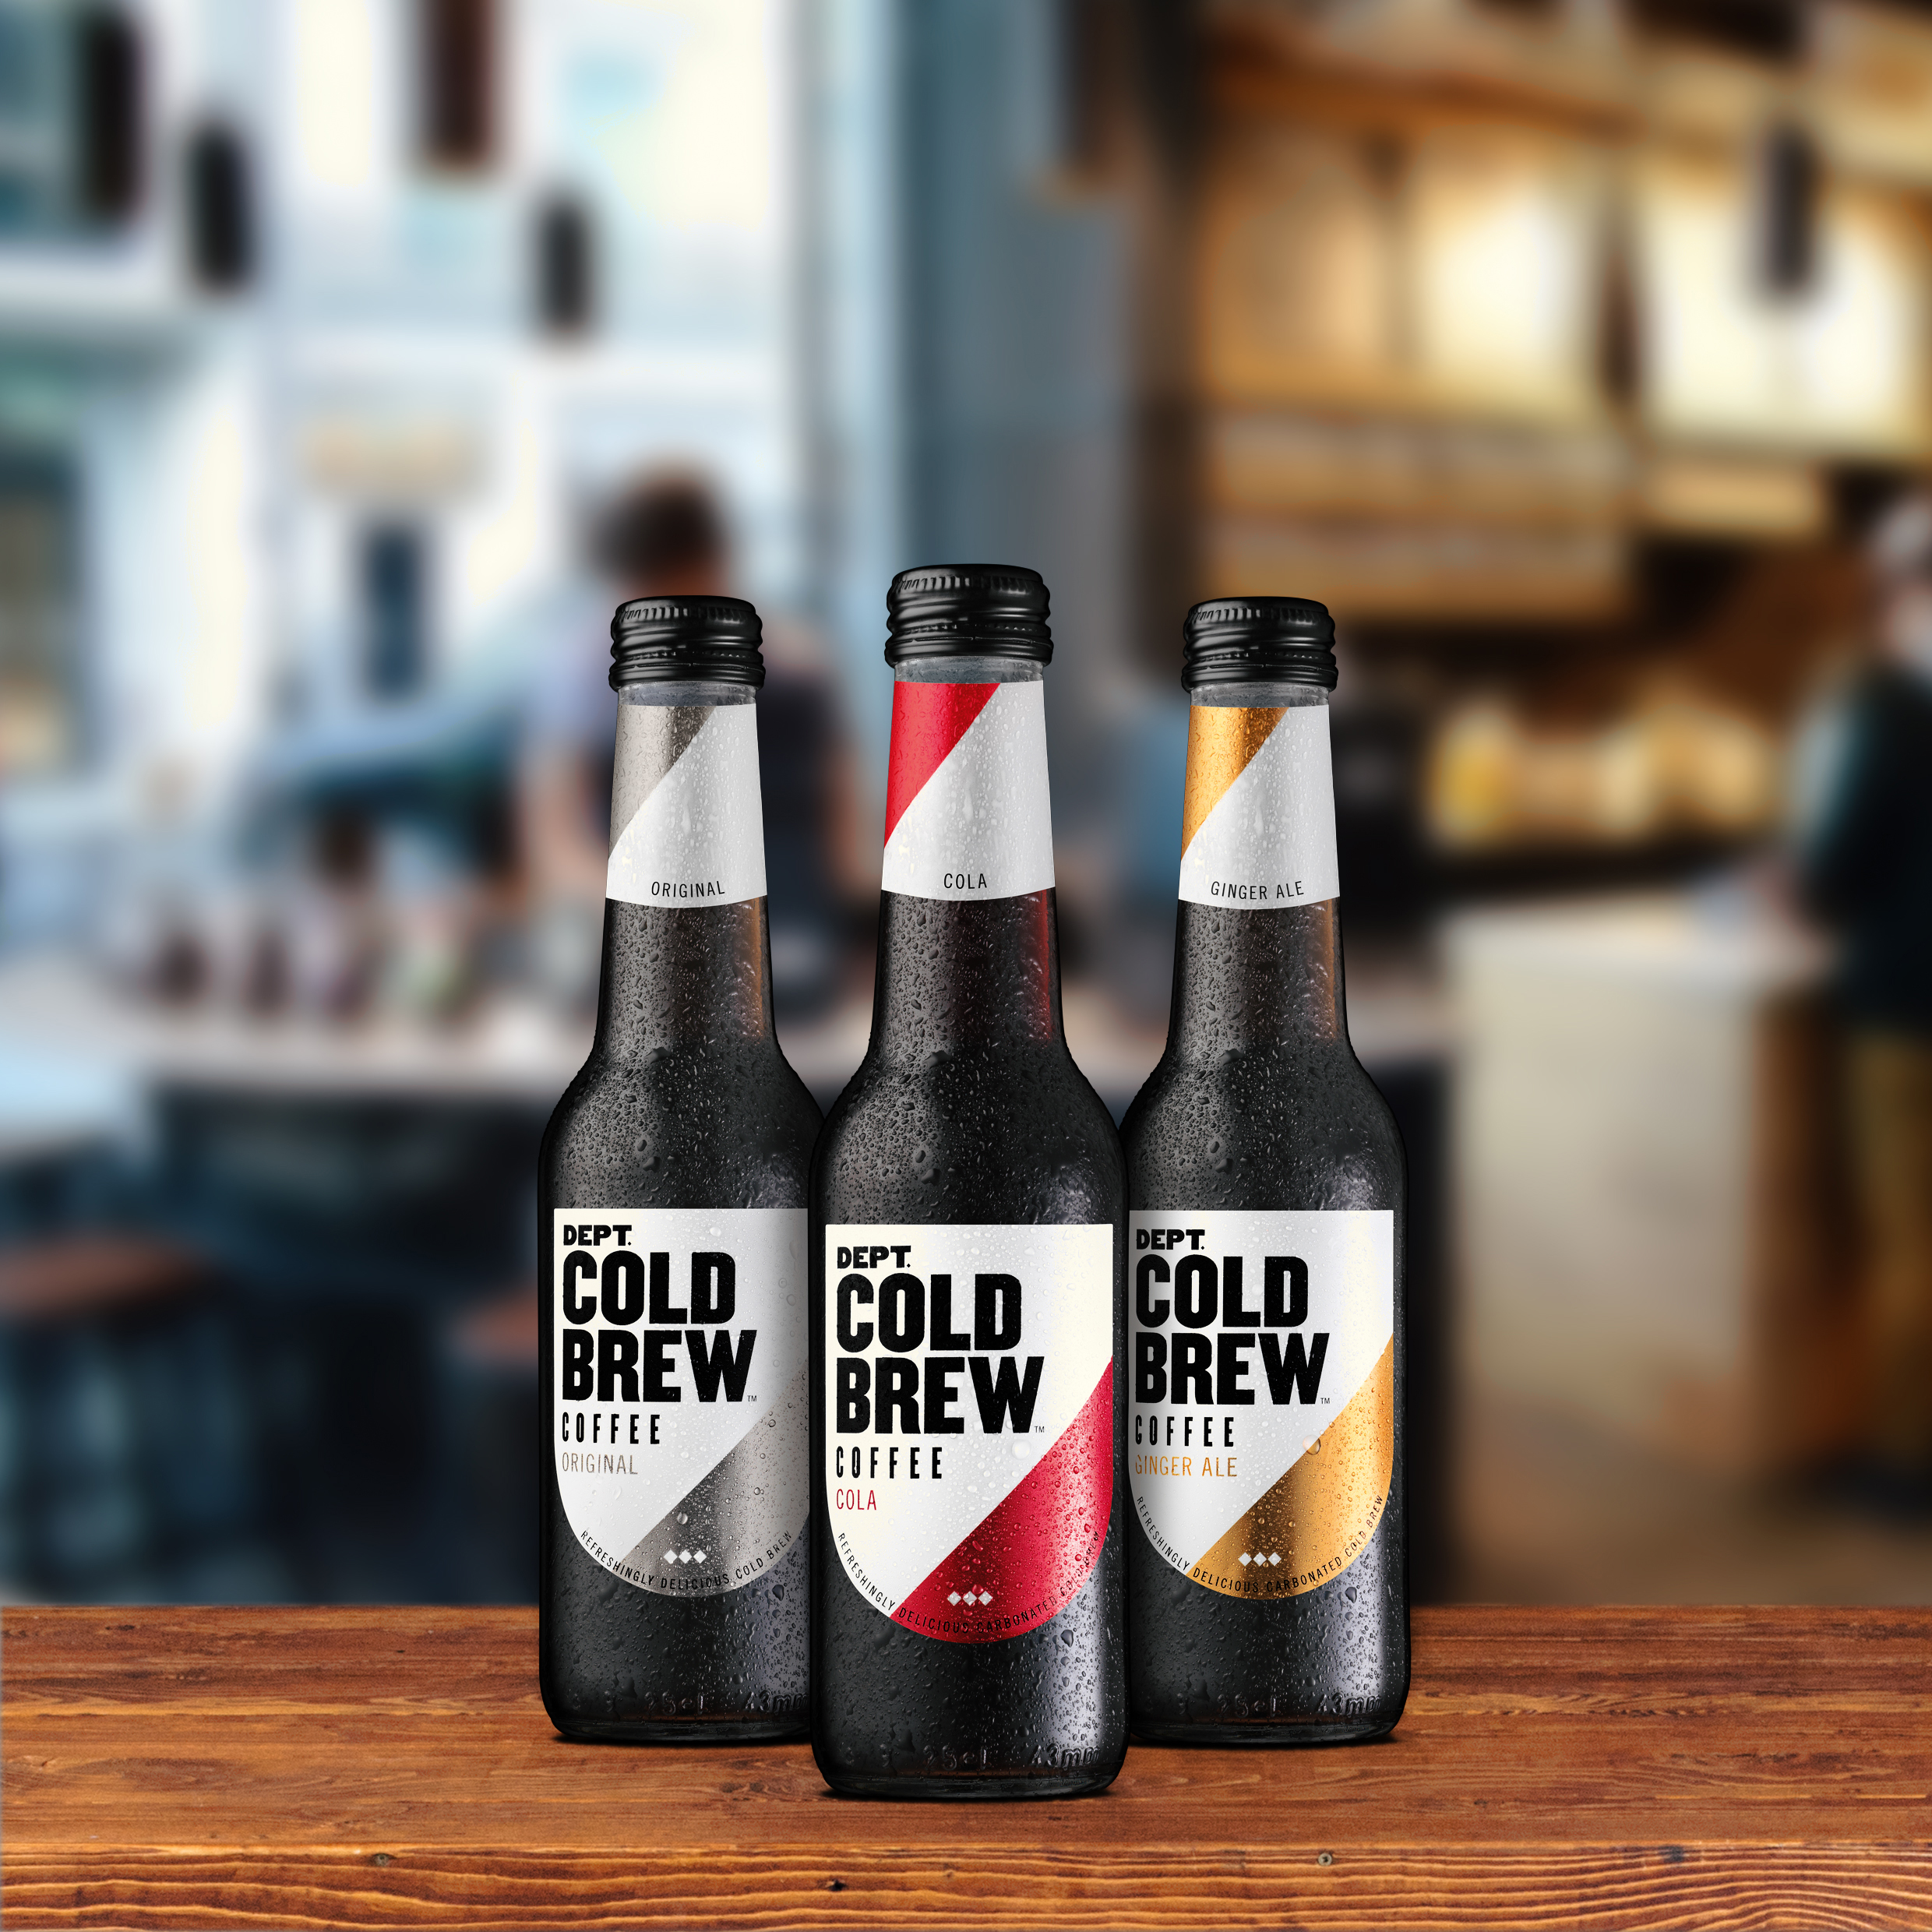 Thesoft drinkfor coffeelovers. - To become a stockist, email:info@deptcoldbrew.com